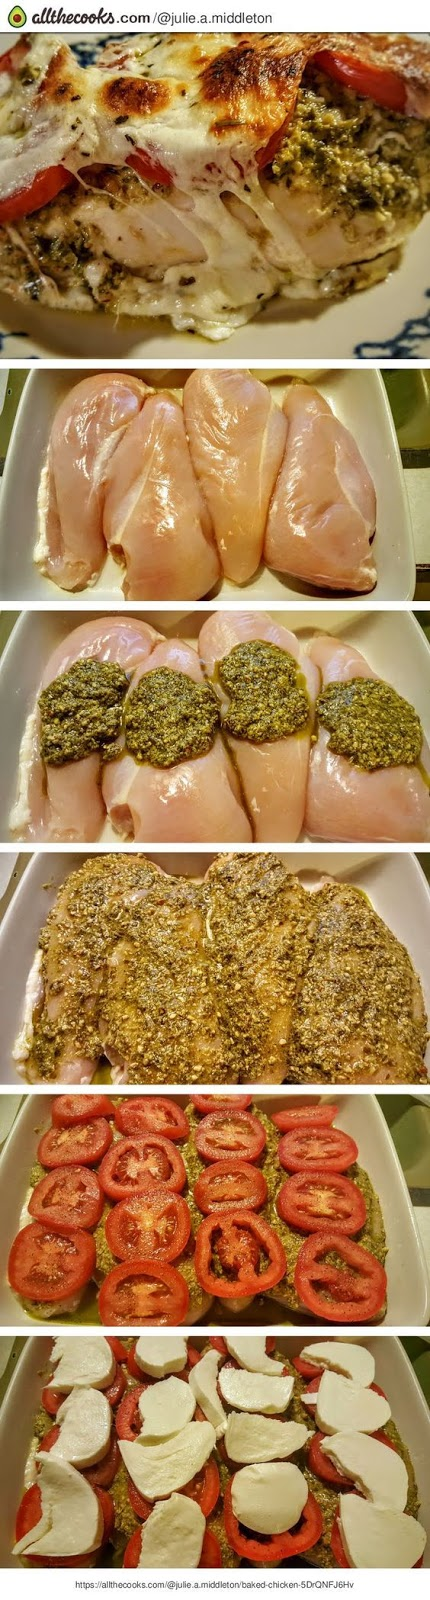 Pesto, Tomato, & Mozzarella Baked Chicken